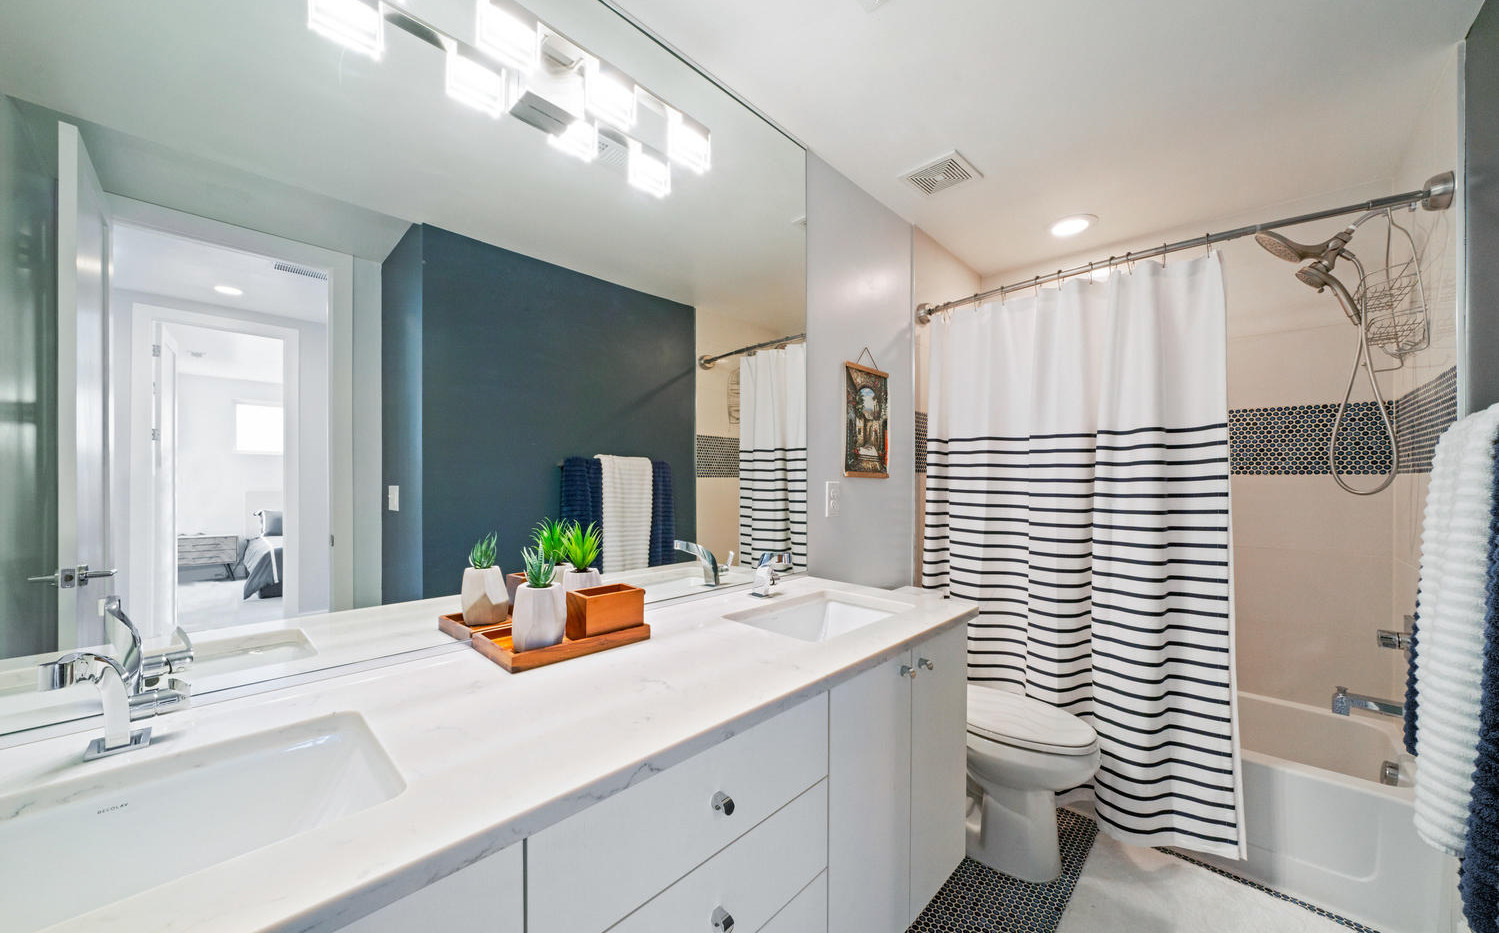 3424 W 18th Avenue-large-035-044-Bathroo